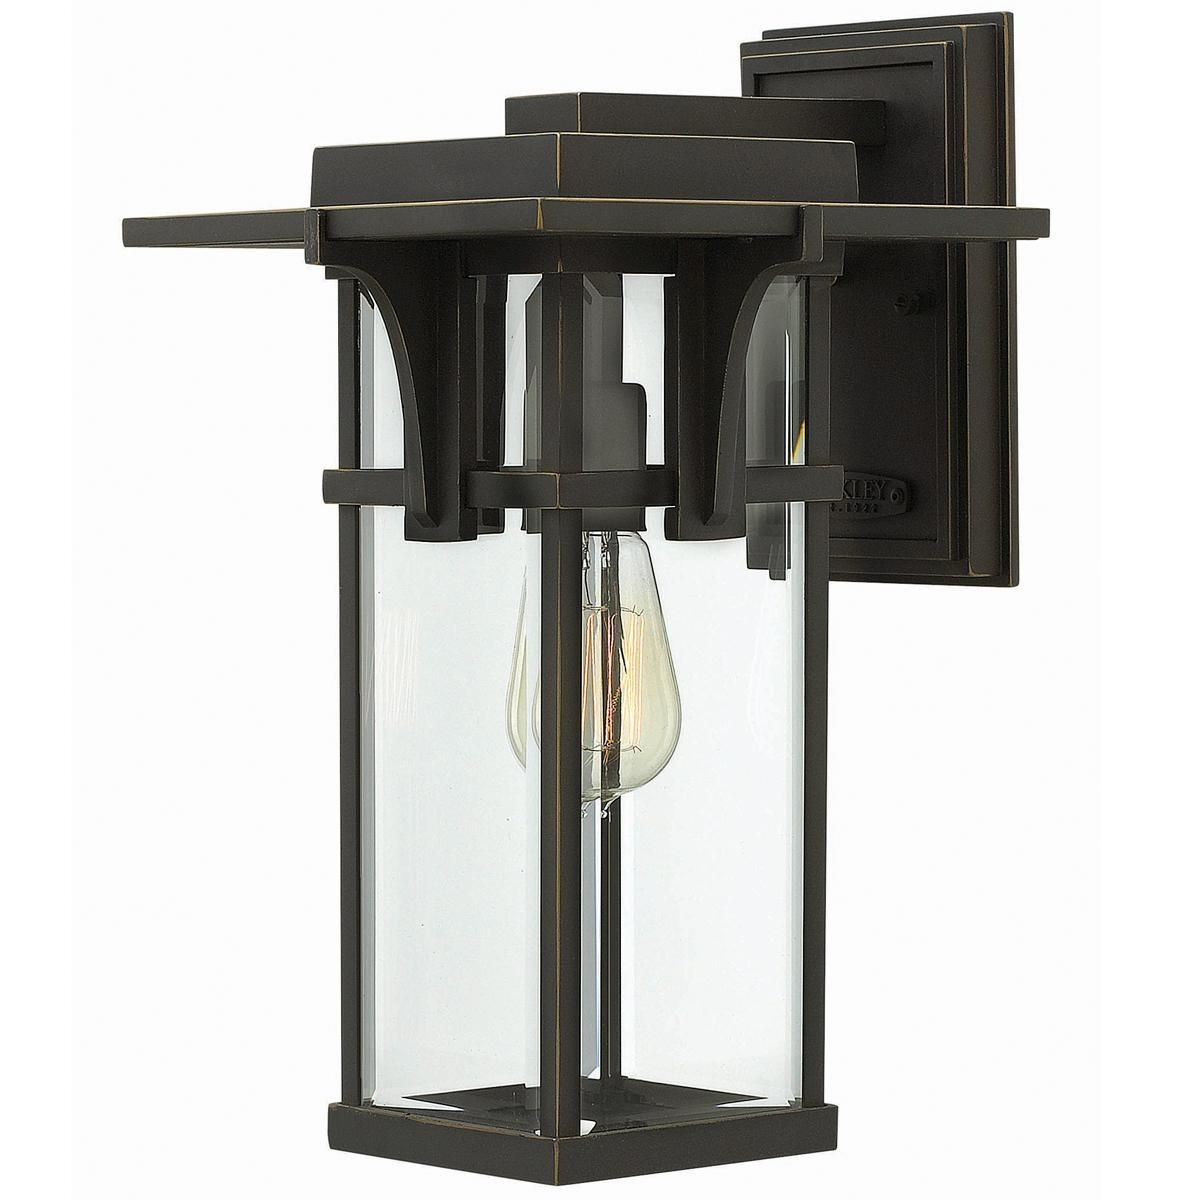 Modern revival outdoor sconcelarge my house present u future